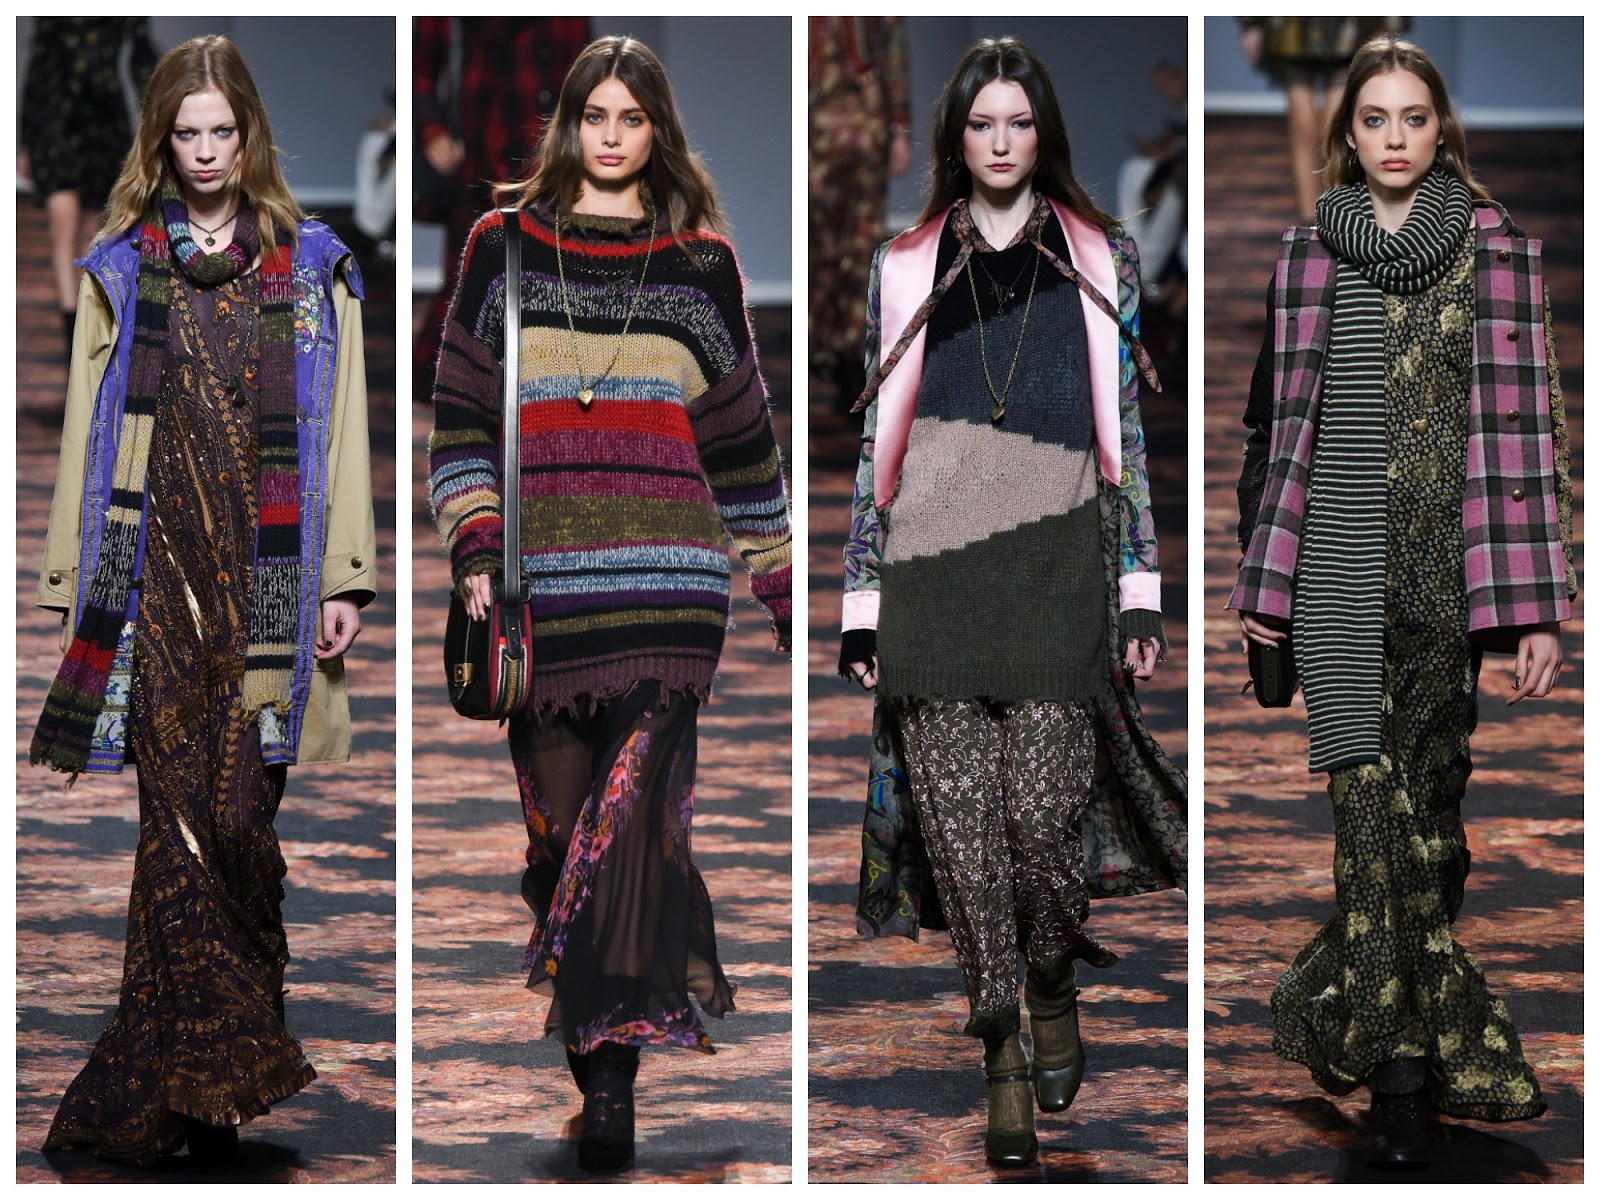 etro-fashion-show-fall-winter-2016